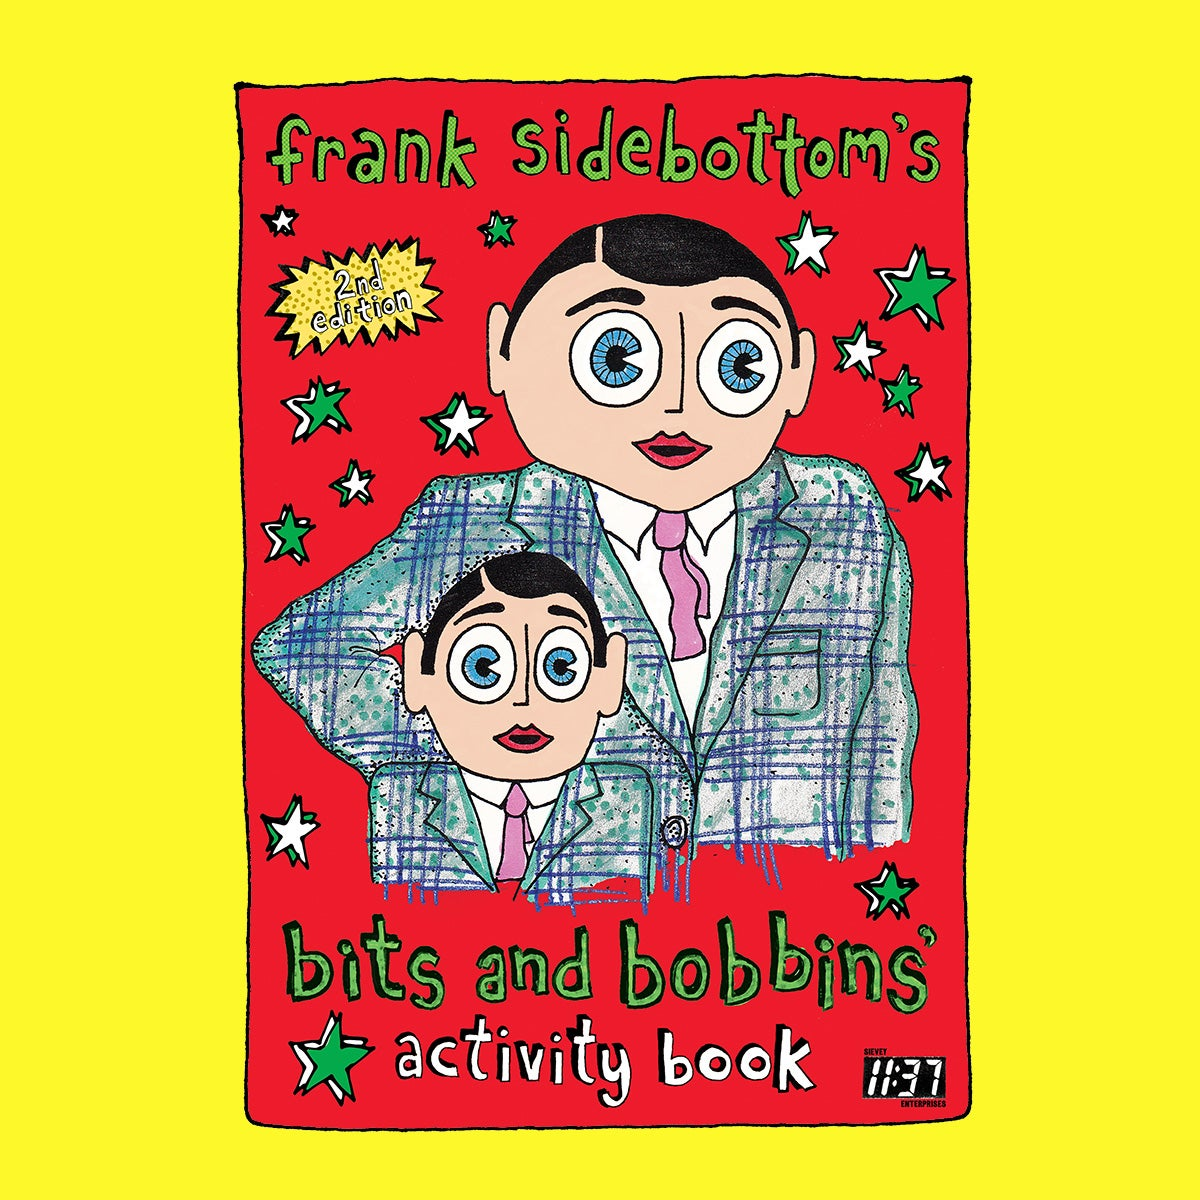 Image of Second Edition of Frank Sidebottom's Bits and Bobbins Activity Book